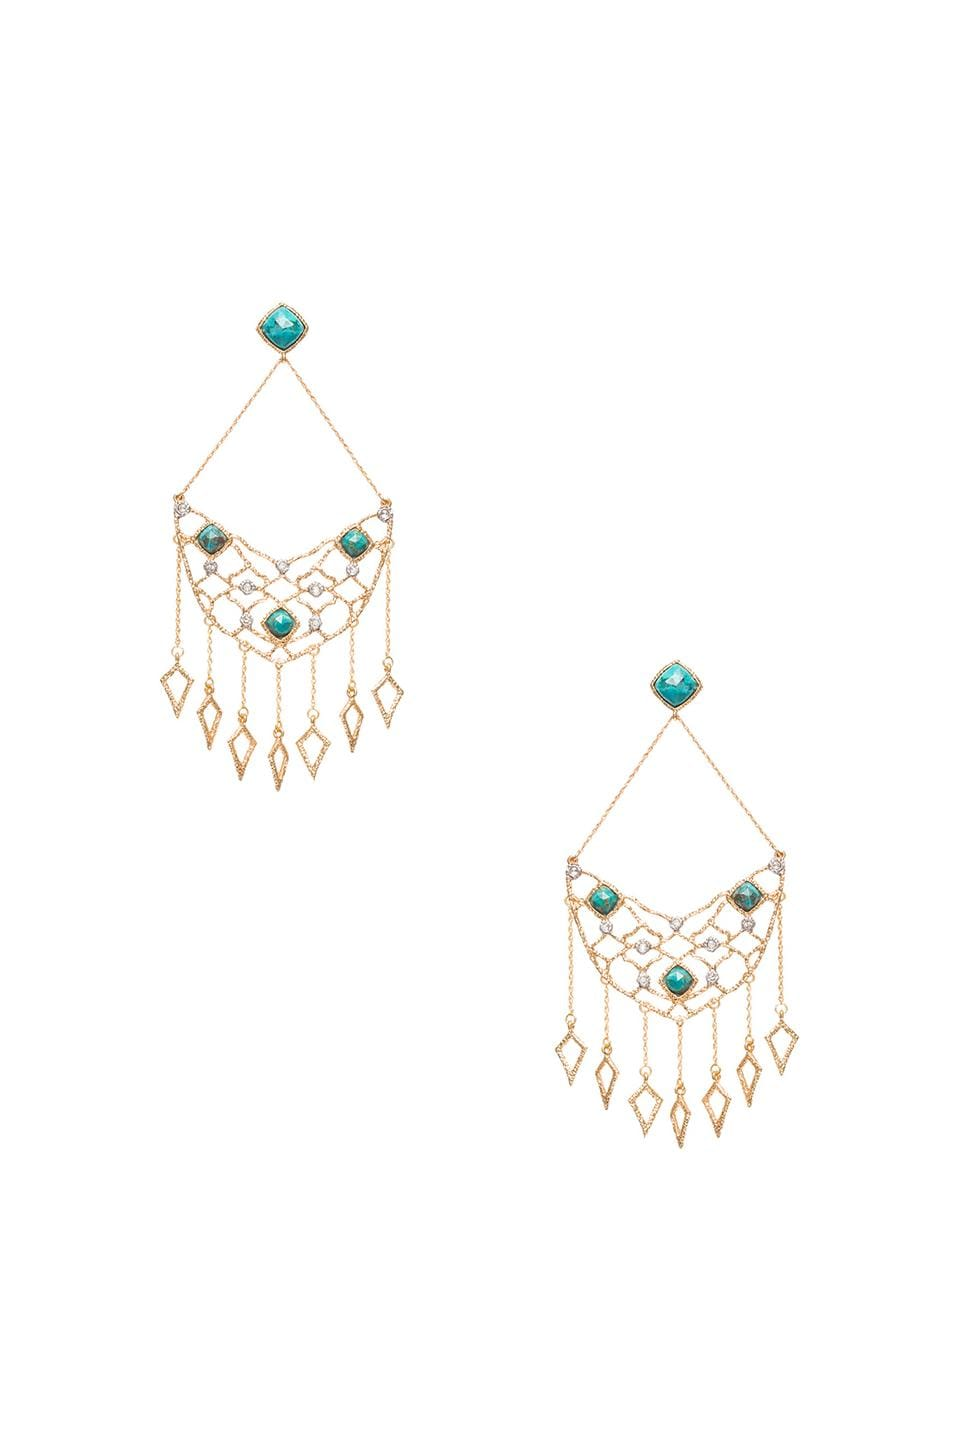 Alexis Bittar Chandelier Earrings in Gold